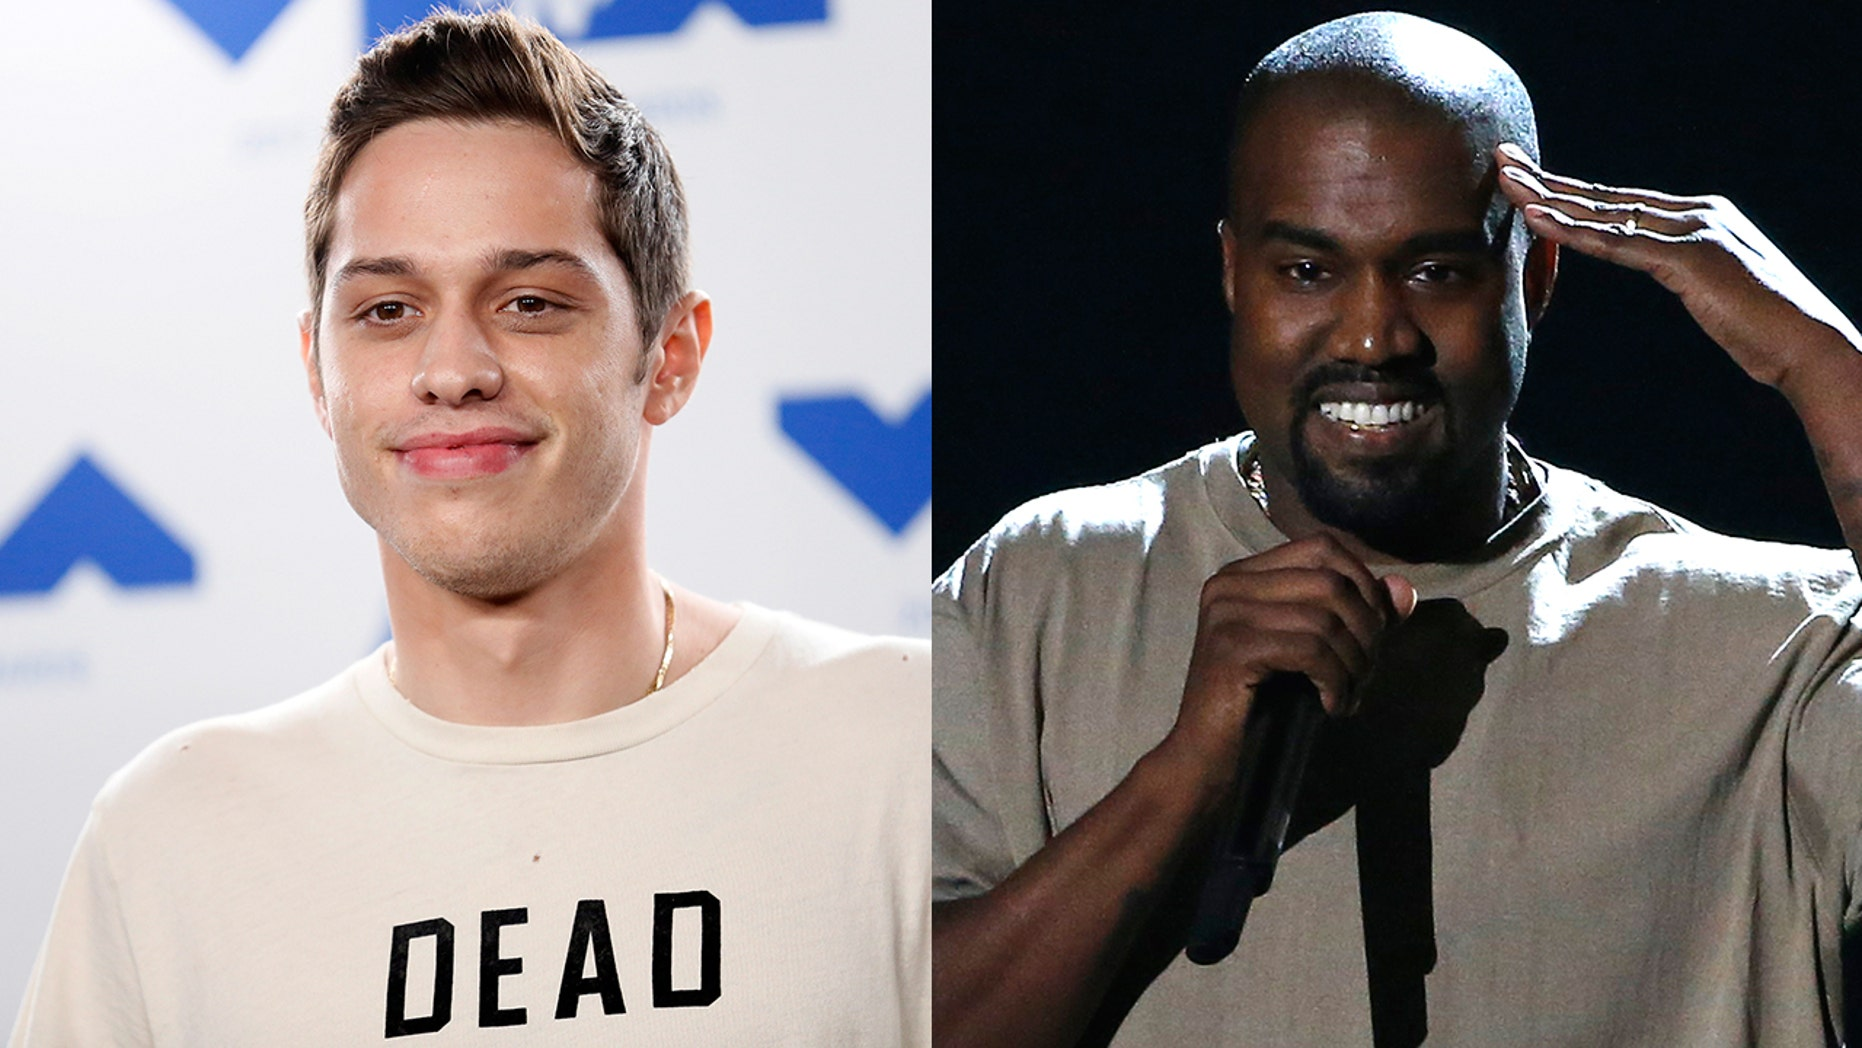 Pete Davidson Spends Time With Kanye West After 'SNL' Diss